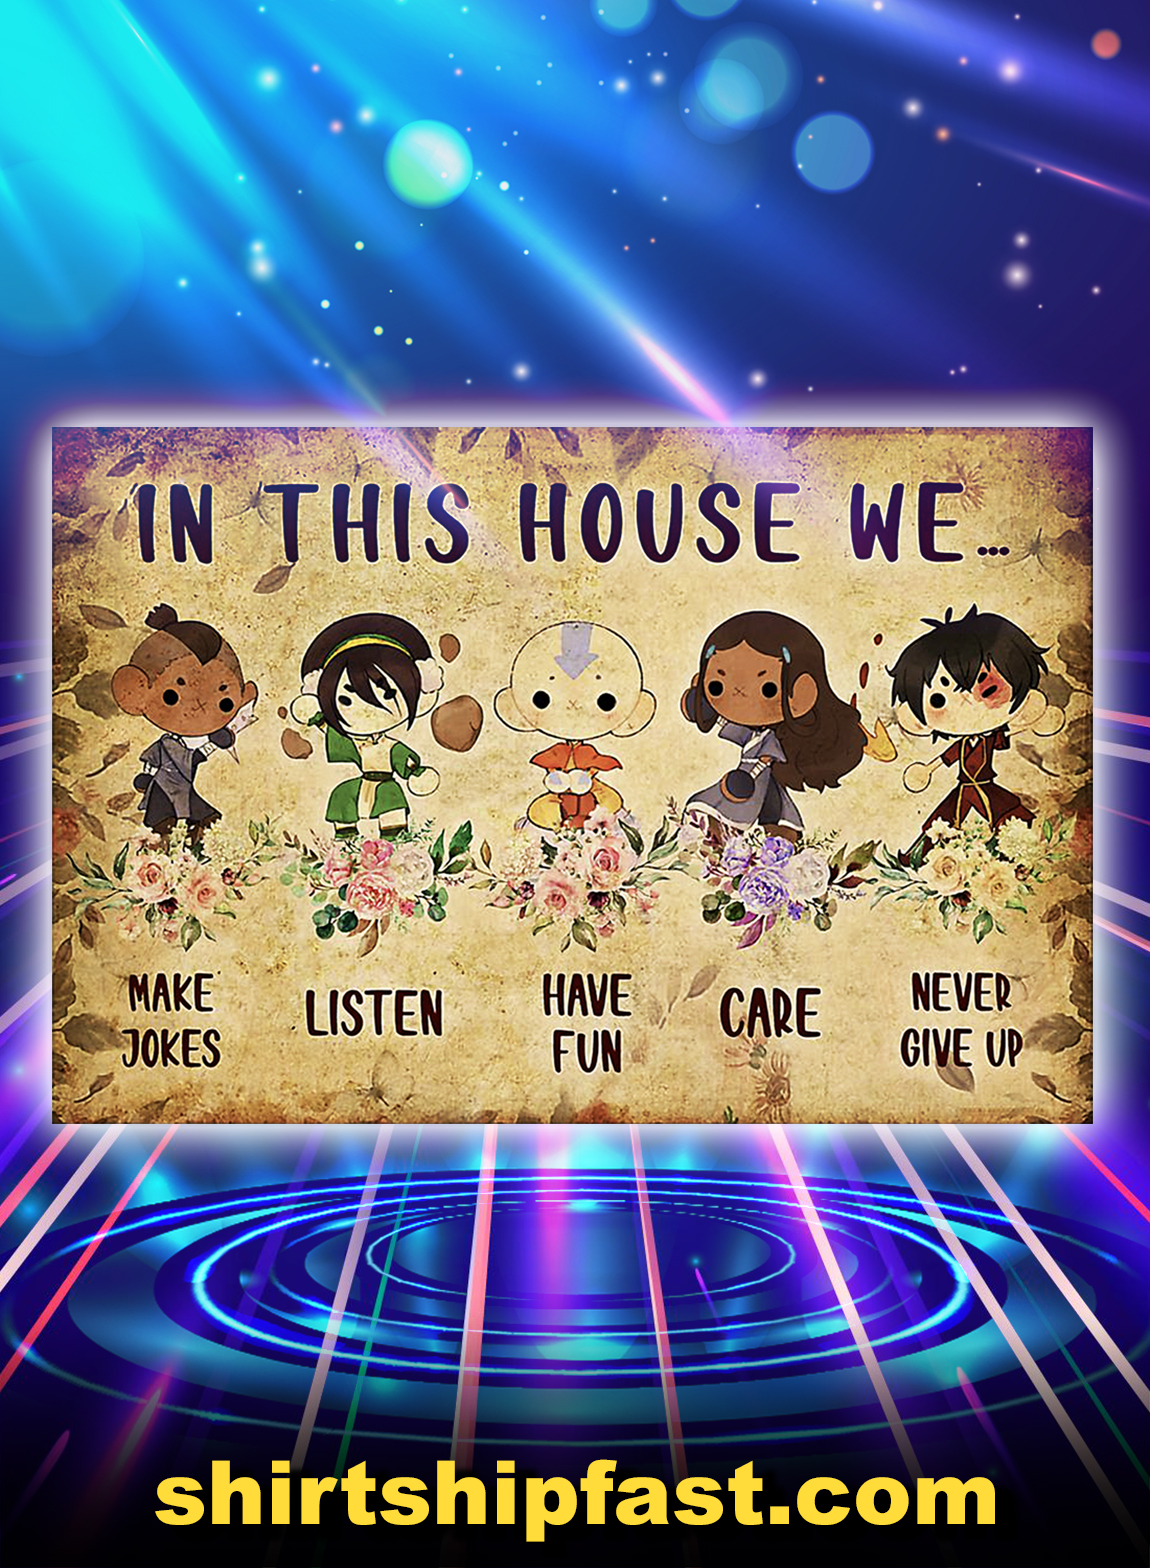 The last airbender in this house we poster - A3